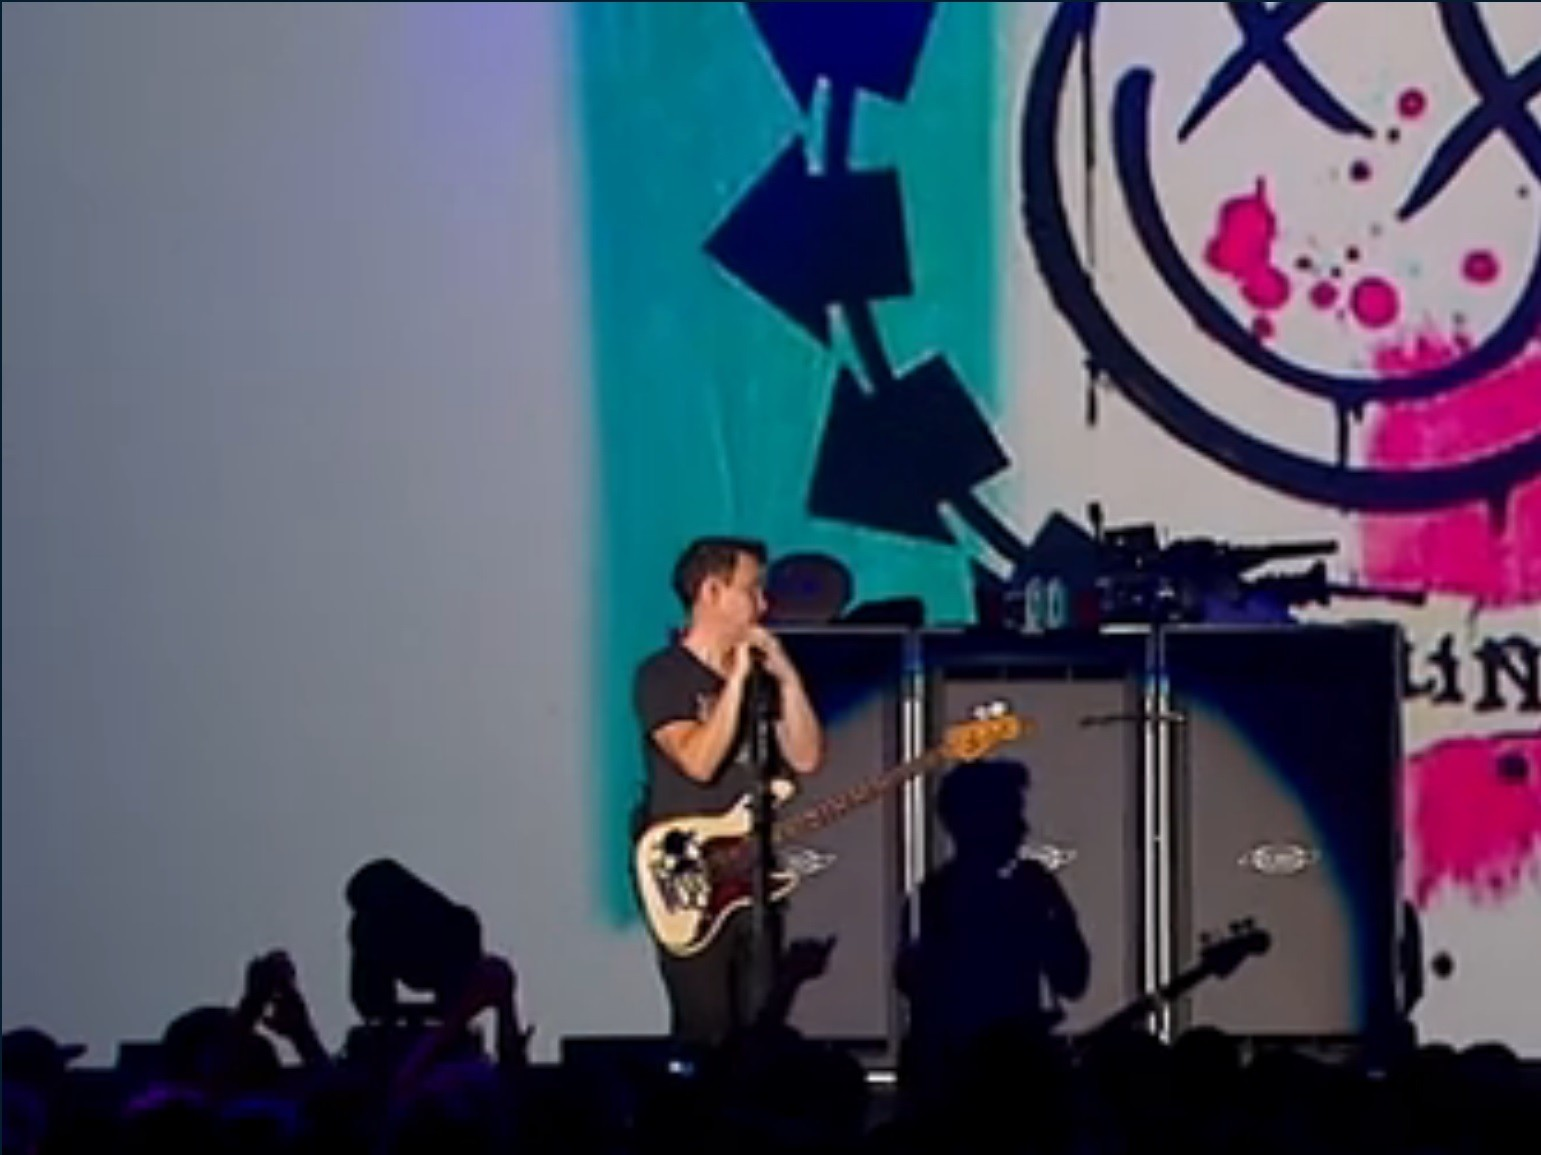 World of Warcraft - Blink 182 at Blizzcon